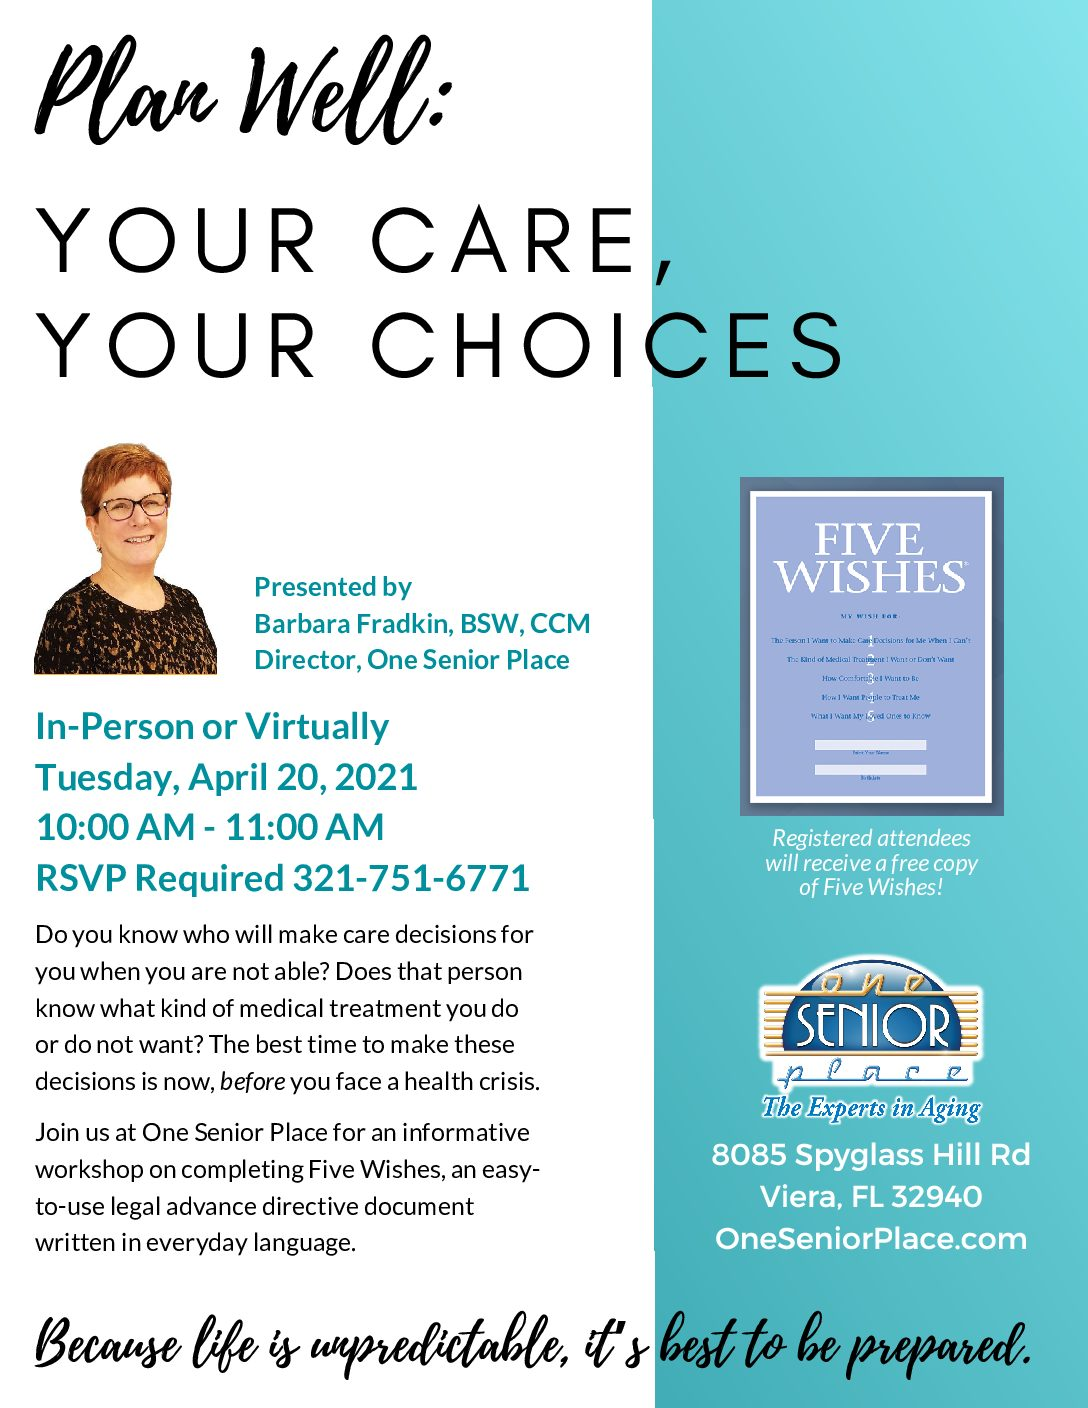 Plan Well: YOUR CARE, YOUR CHOICES - In person or Virtually presented by One Senior Place